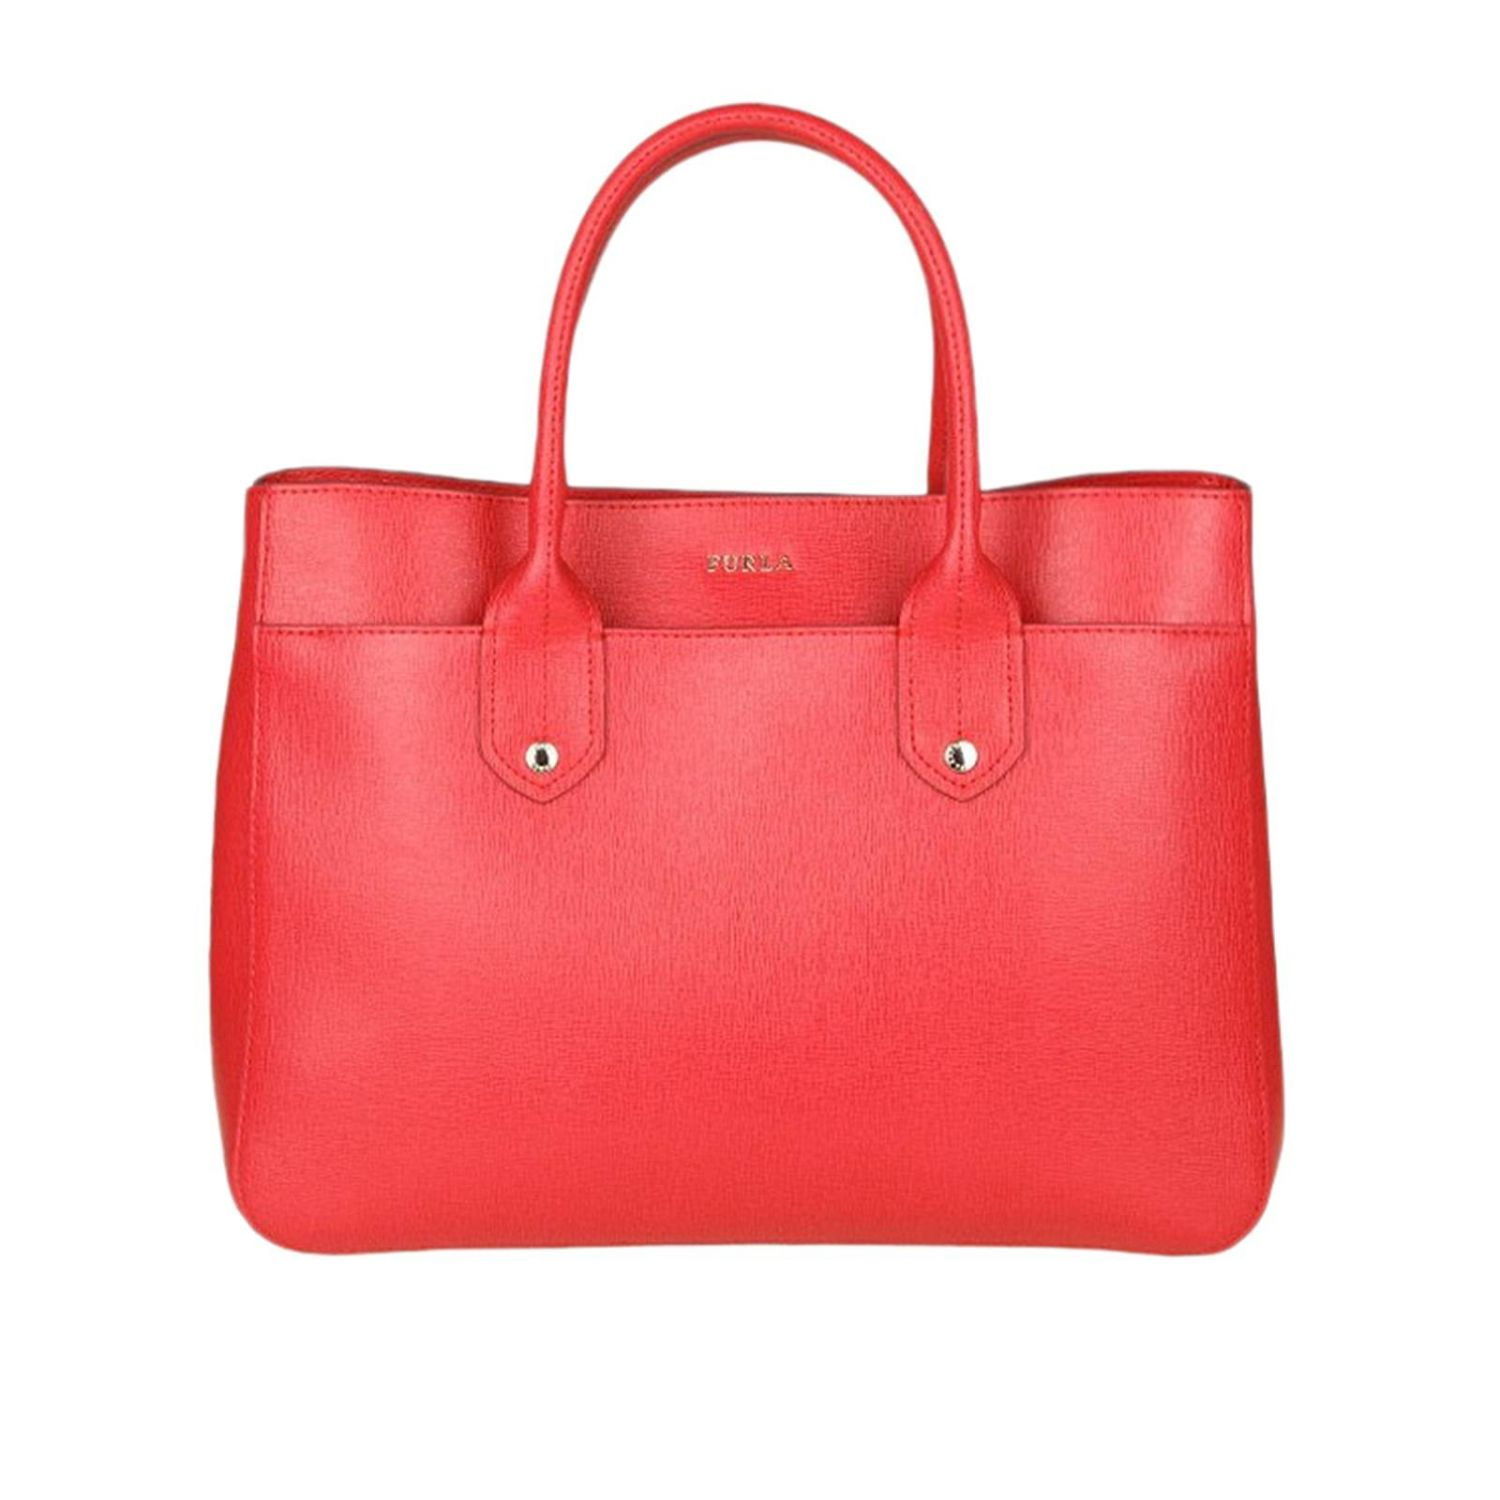 Handbag Shoulder Bag Women Furla 8366019